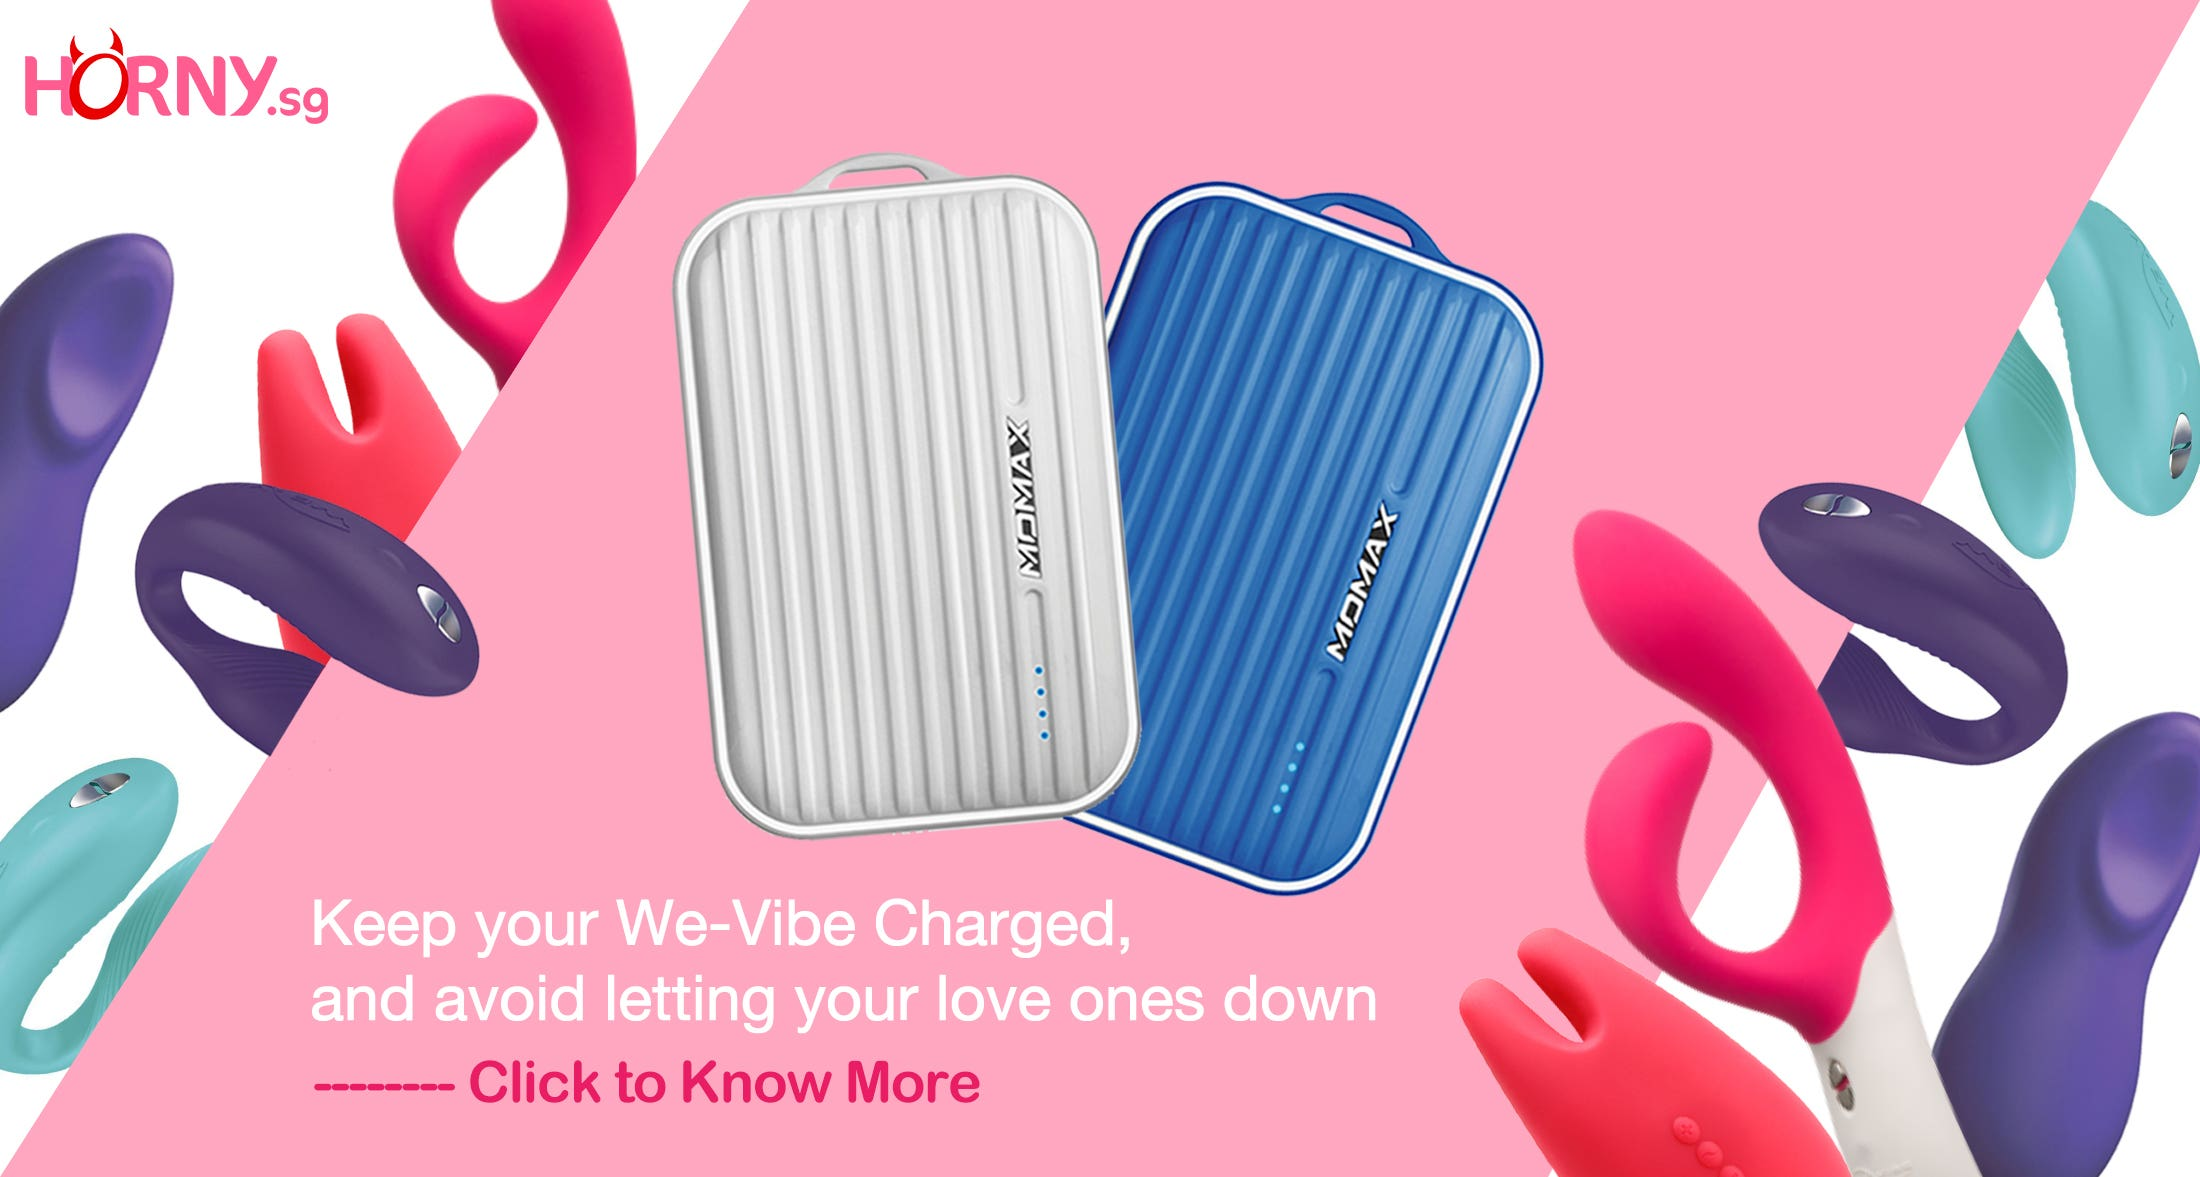 Free Powerbank for We-vibe Sync Purchases